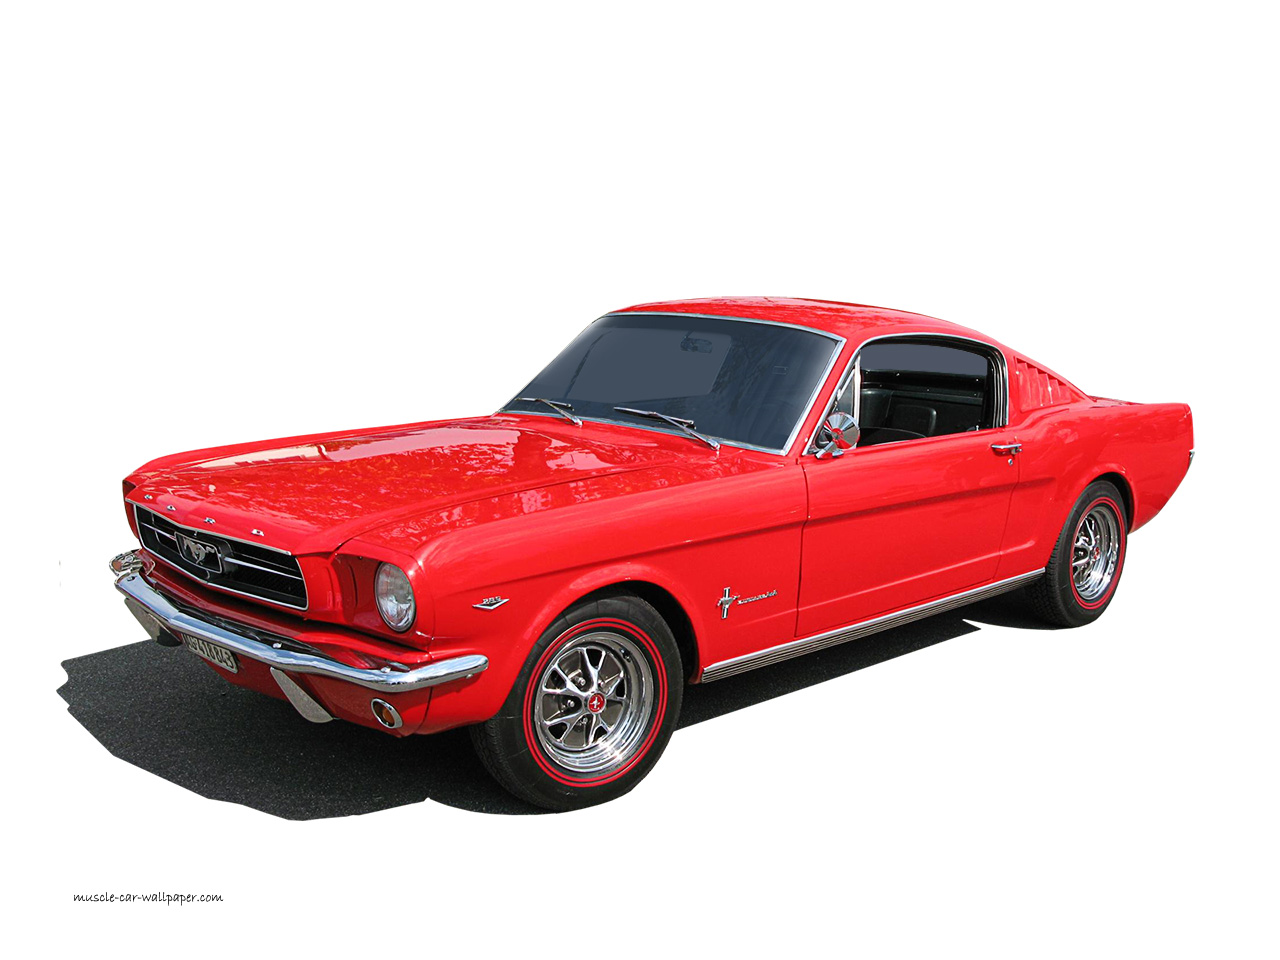 1965 Ford Mustang Wallpaper   Fastback   Left front view 1280 06 1280x960